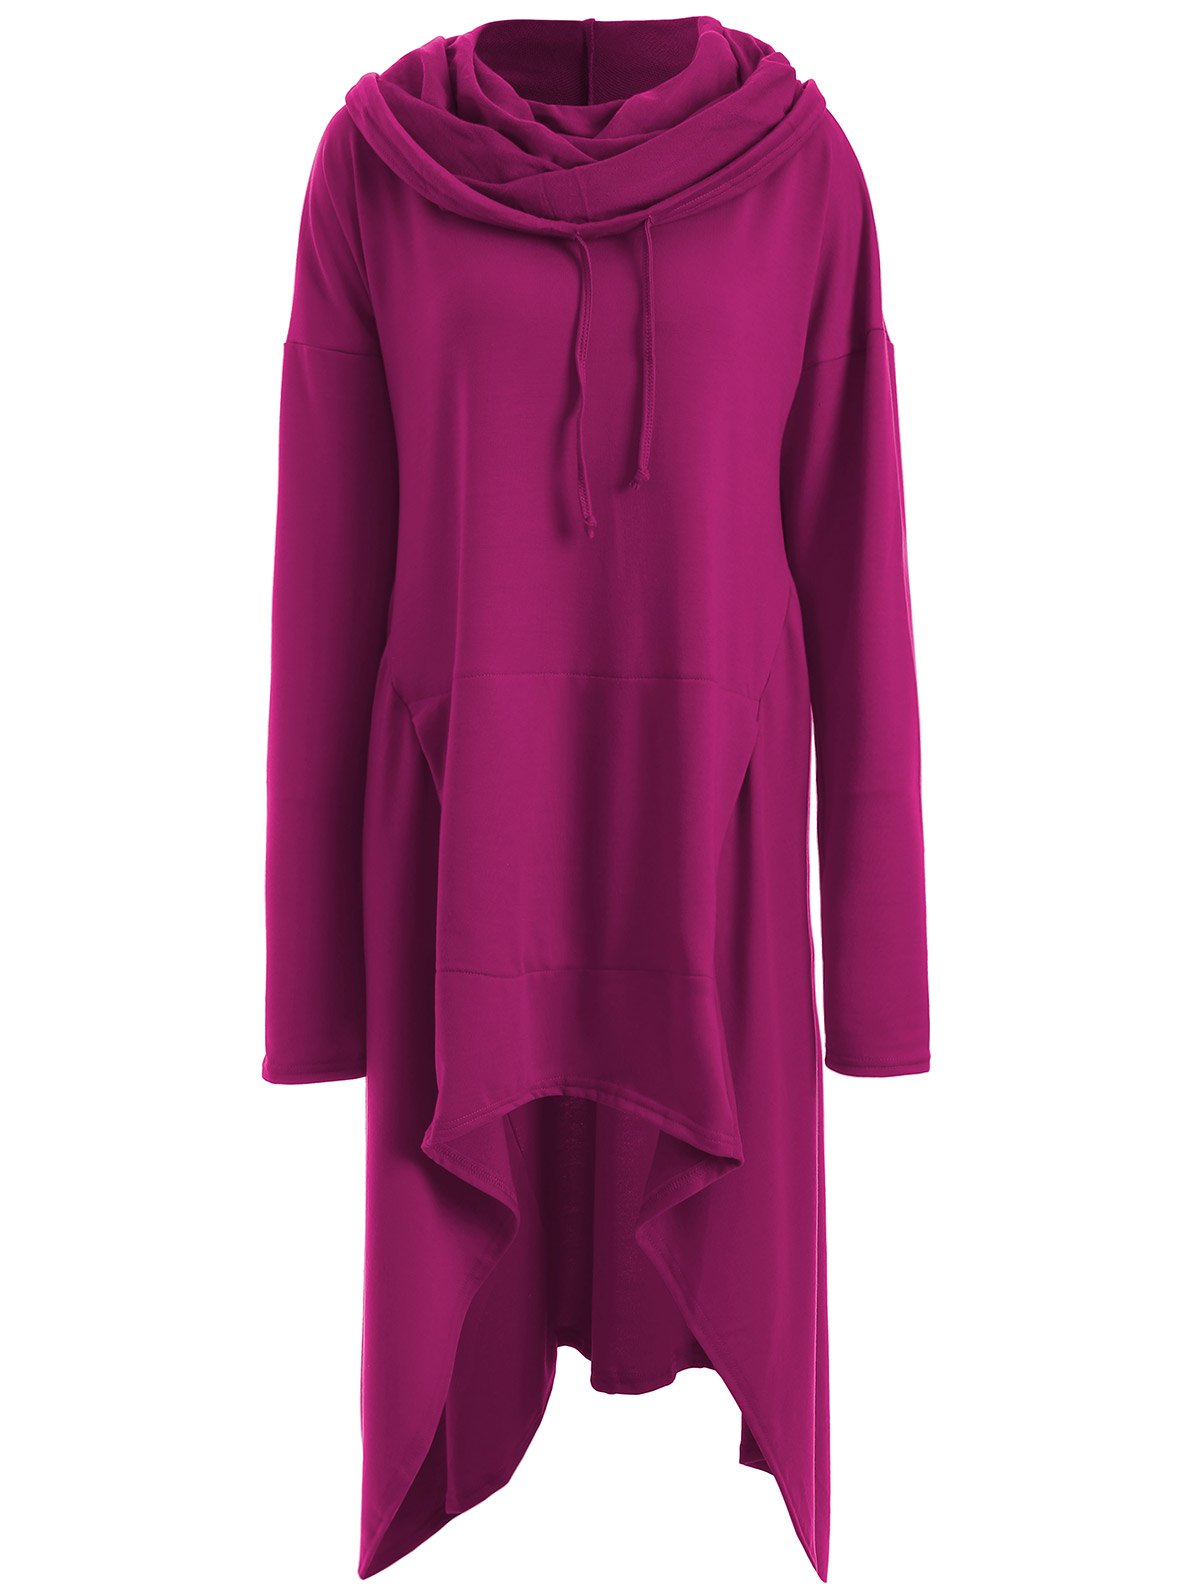 Asymmetrical Pocket Design Loose-Fitting Neck Hoodie - RED VIOLET M